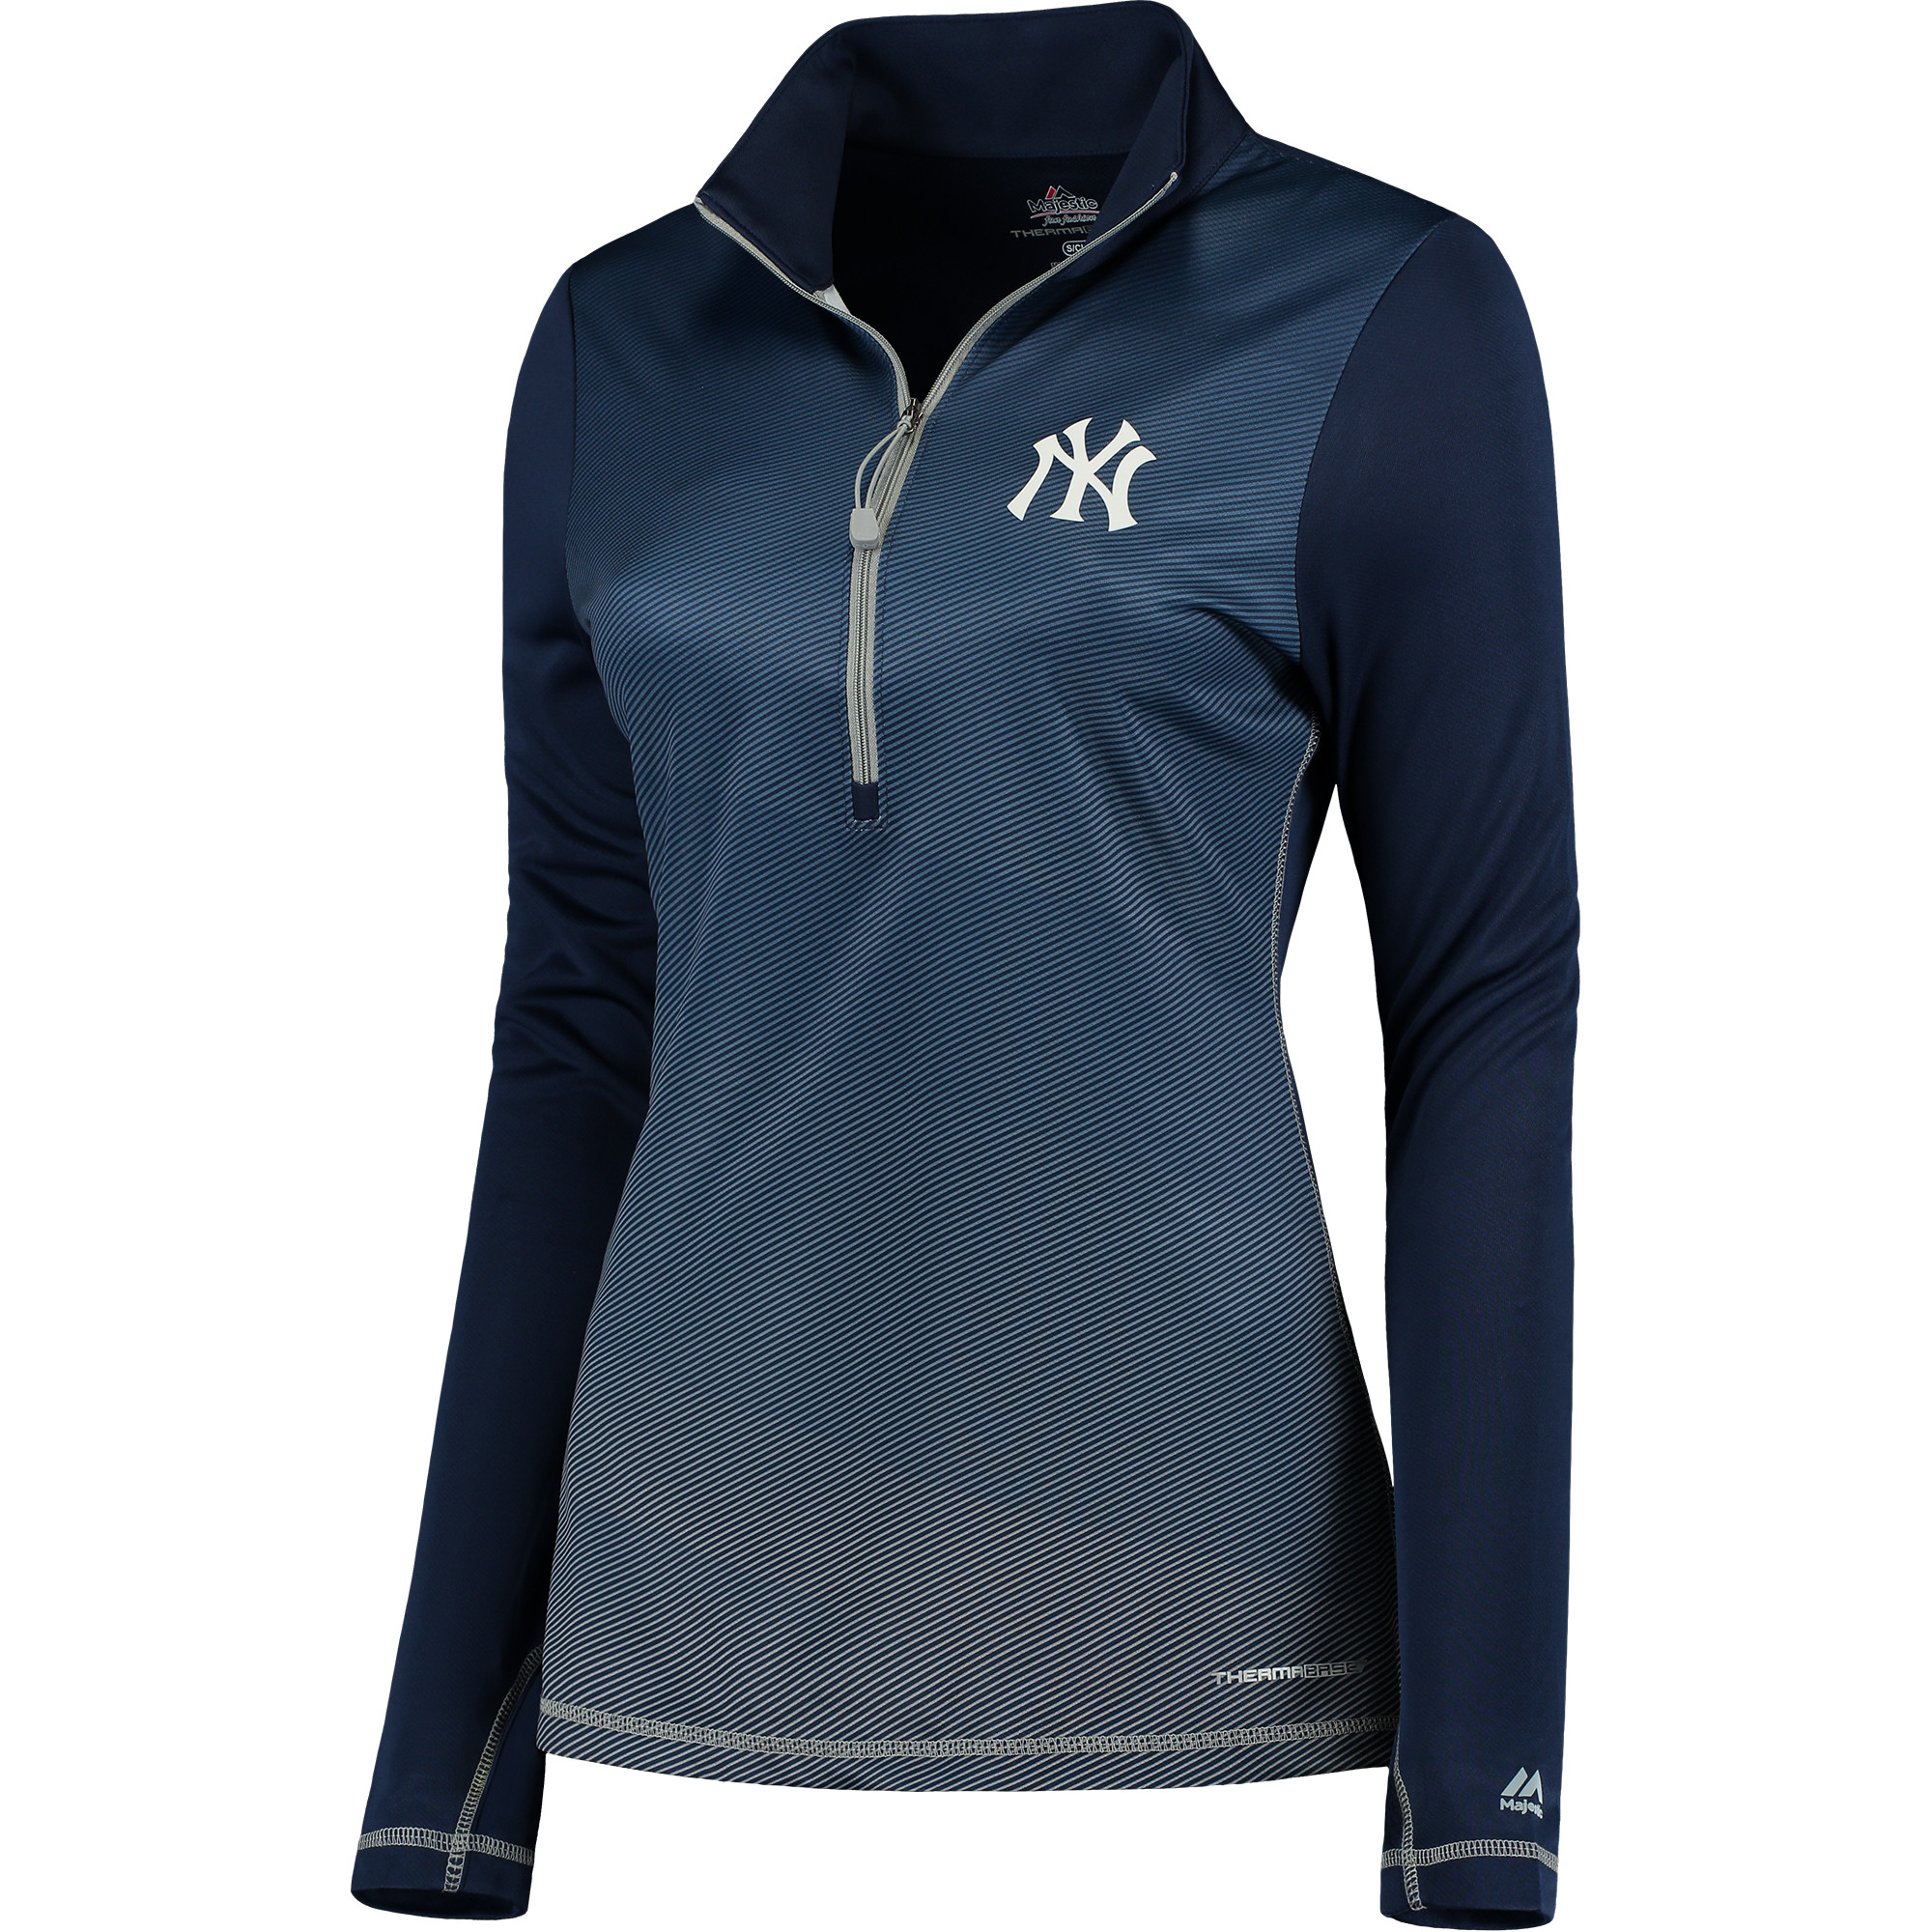 Women's Majestic Navy Gray New York Yankees Believe and Succeed Therma Base Half-Zip Jacket by MAJESTIC LSG